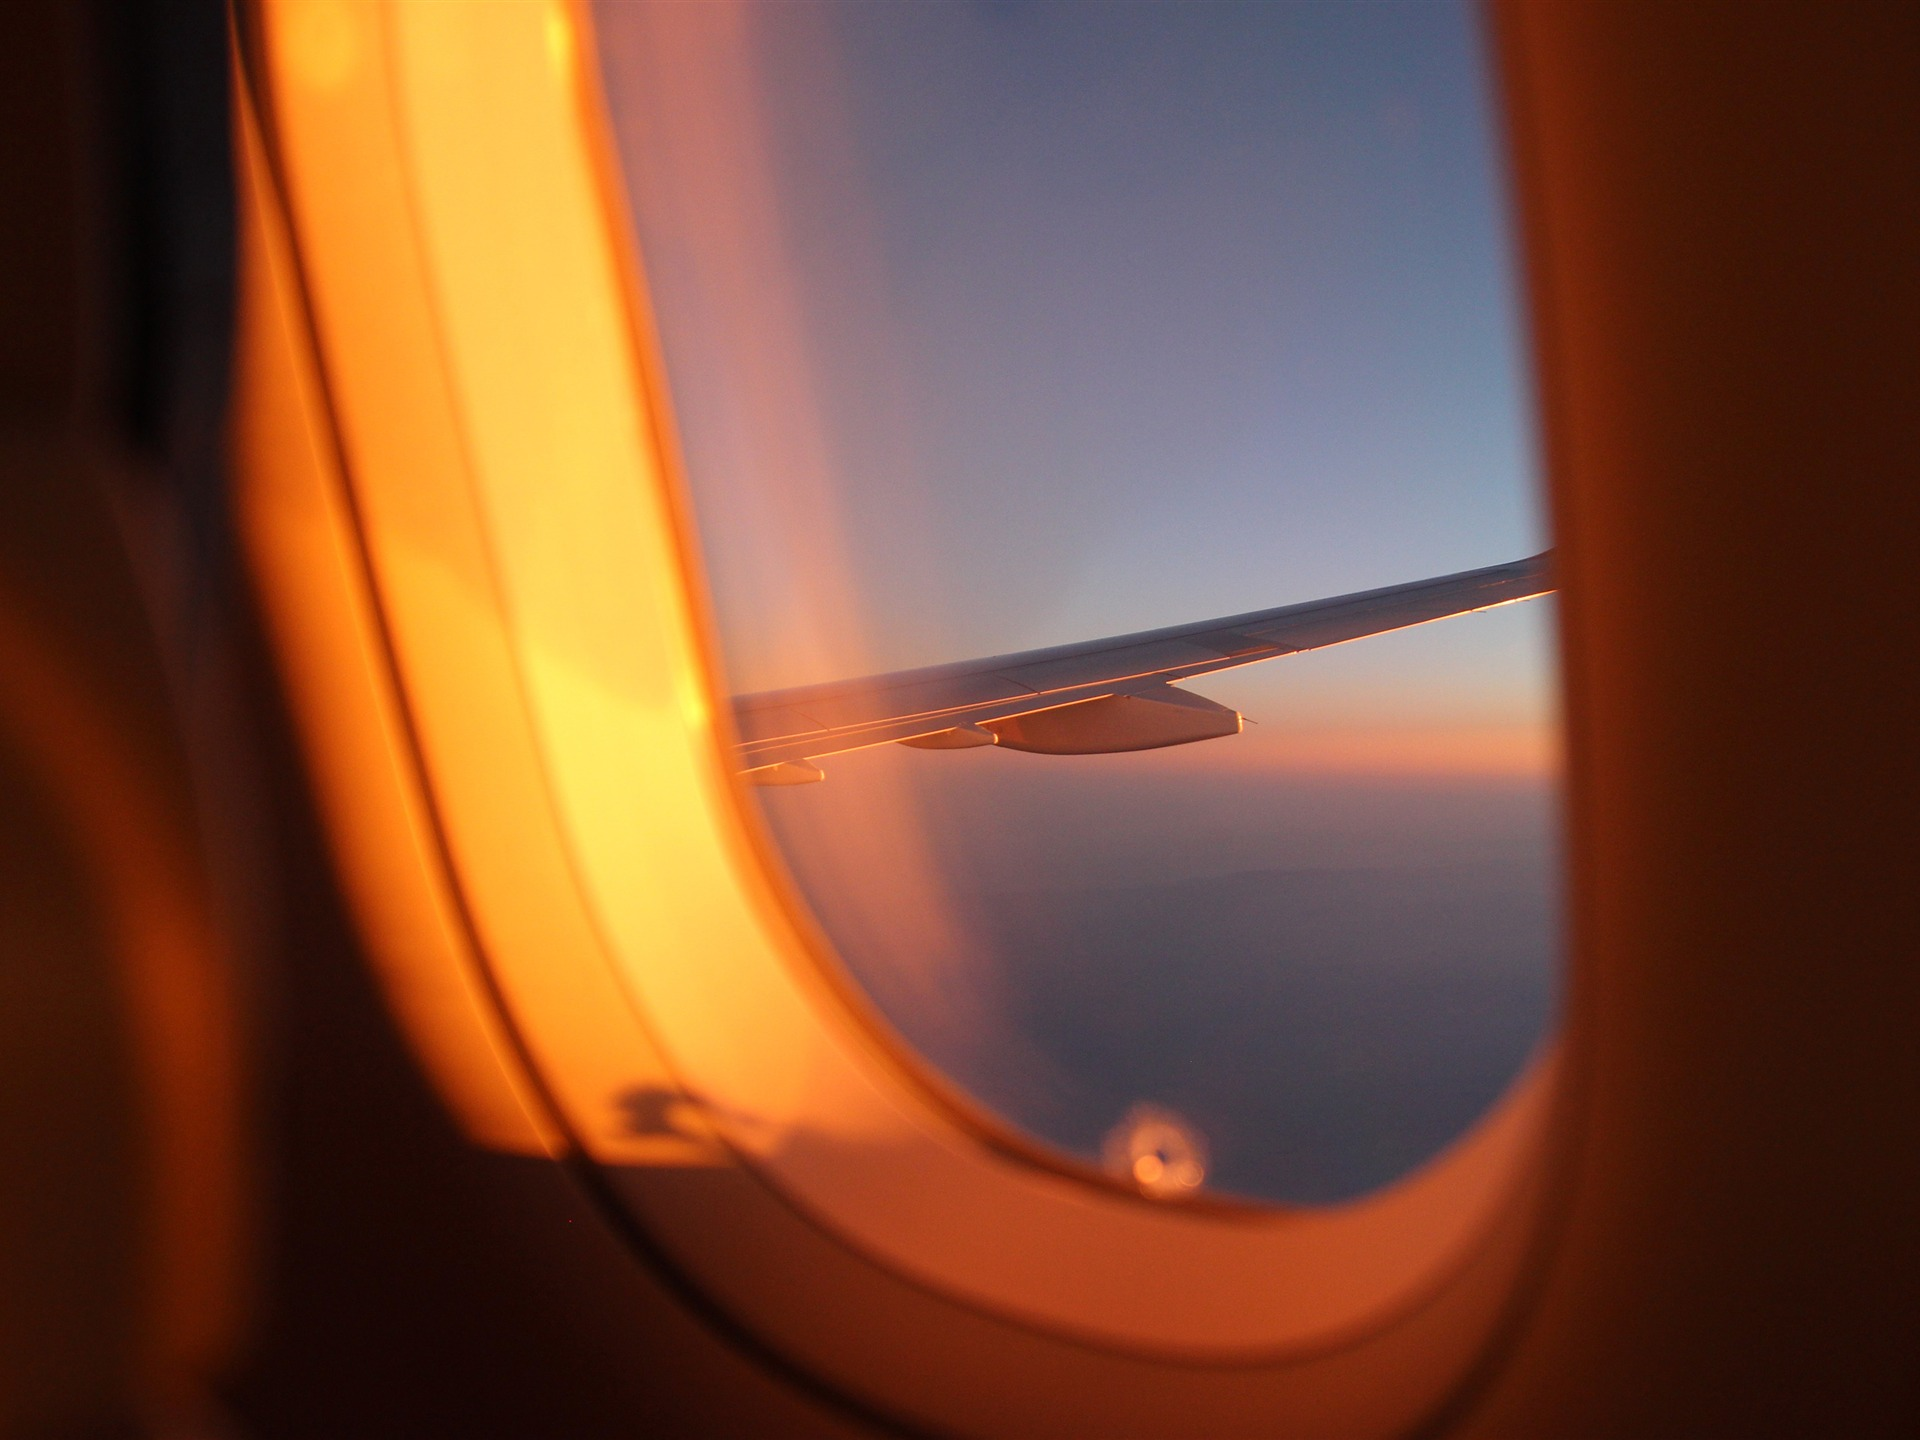 Airplane window outside sunset view 4K HD - 1920x1440 wallpaper download